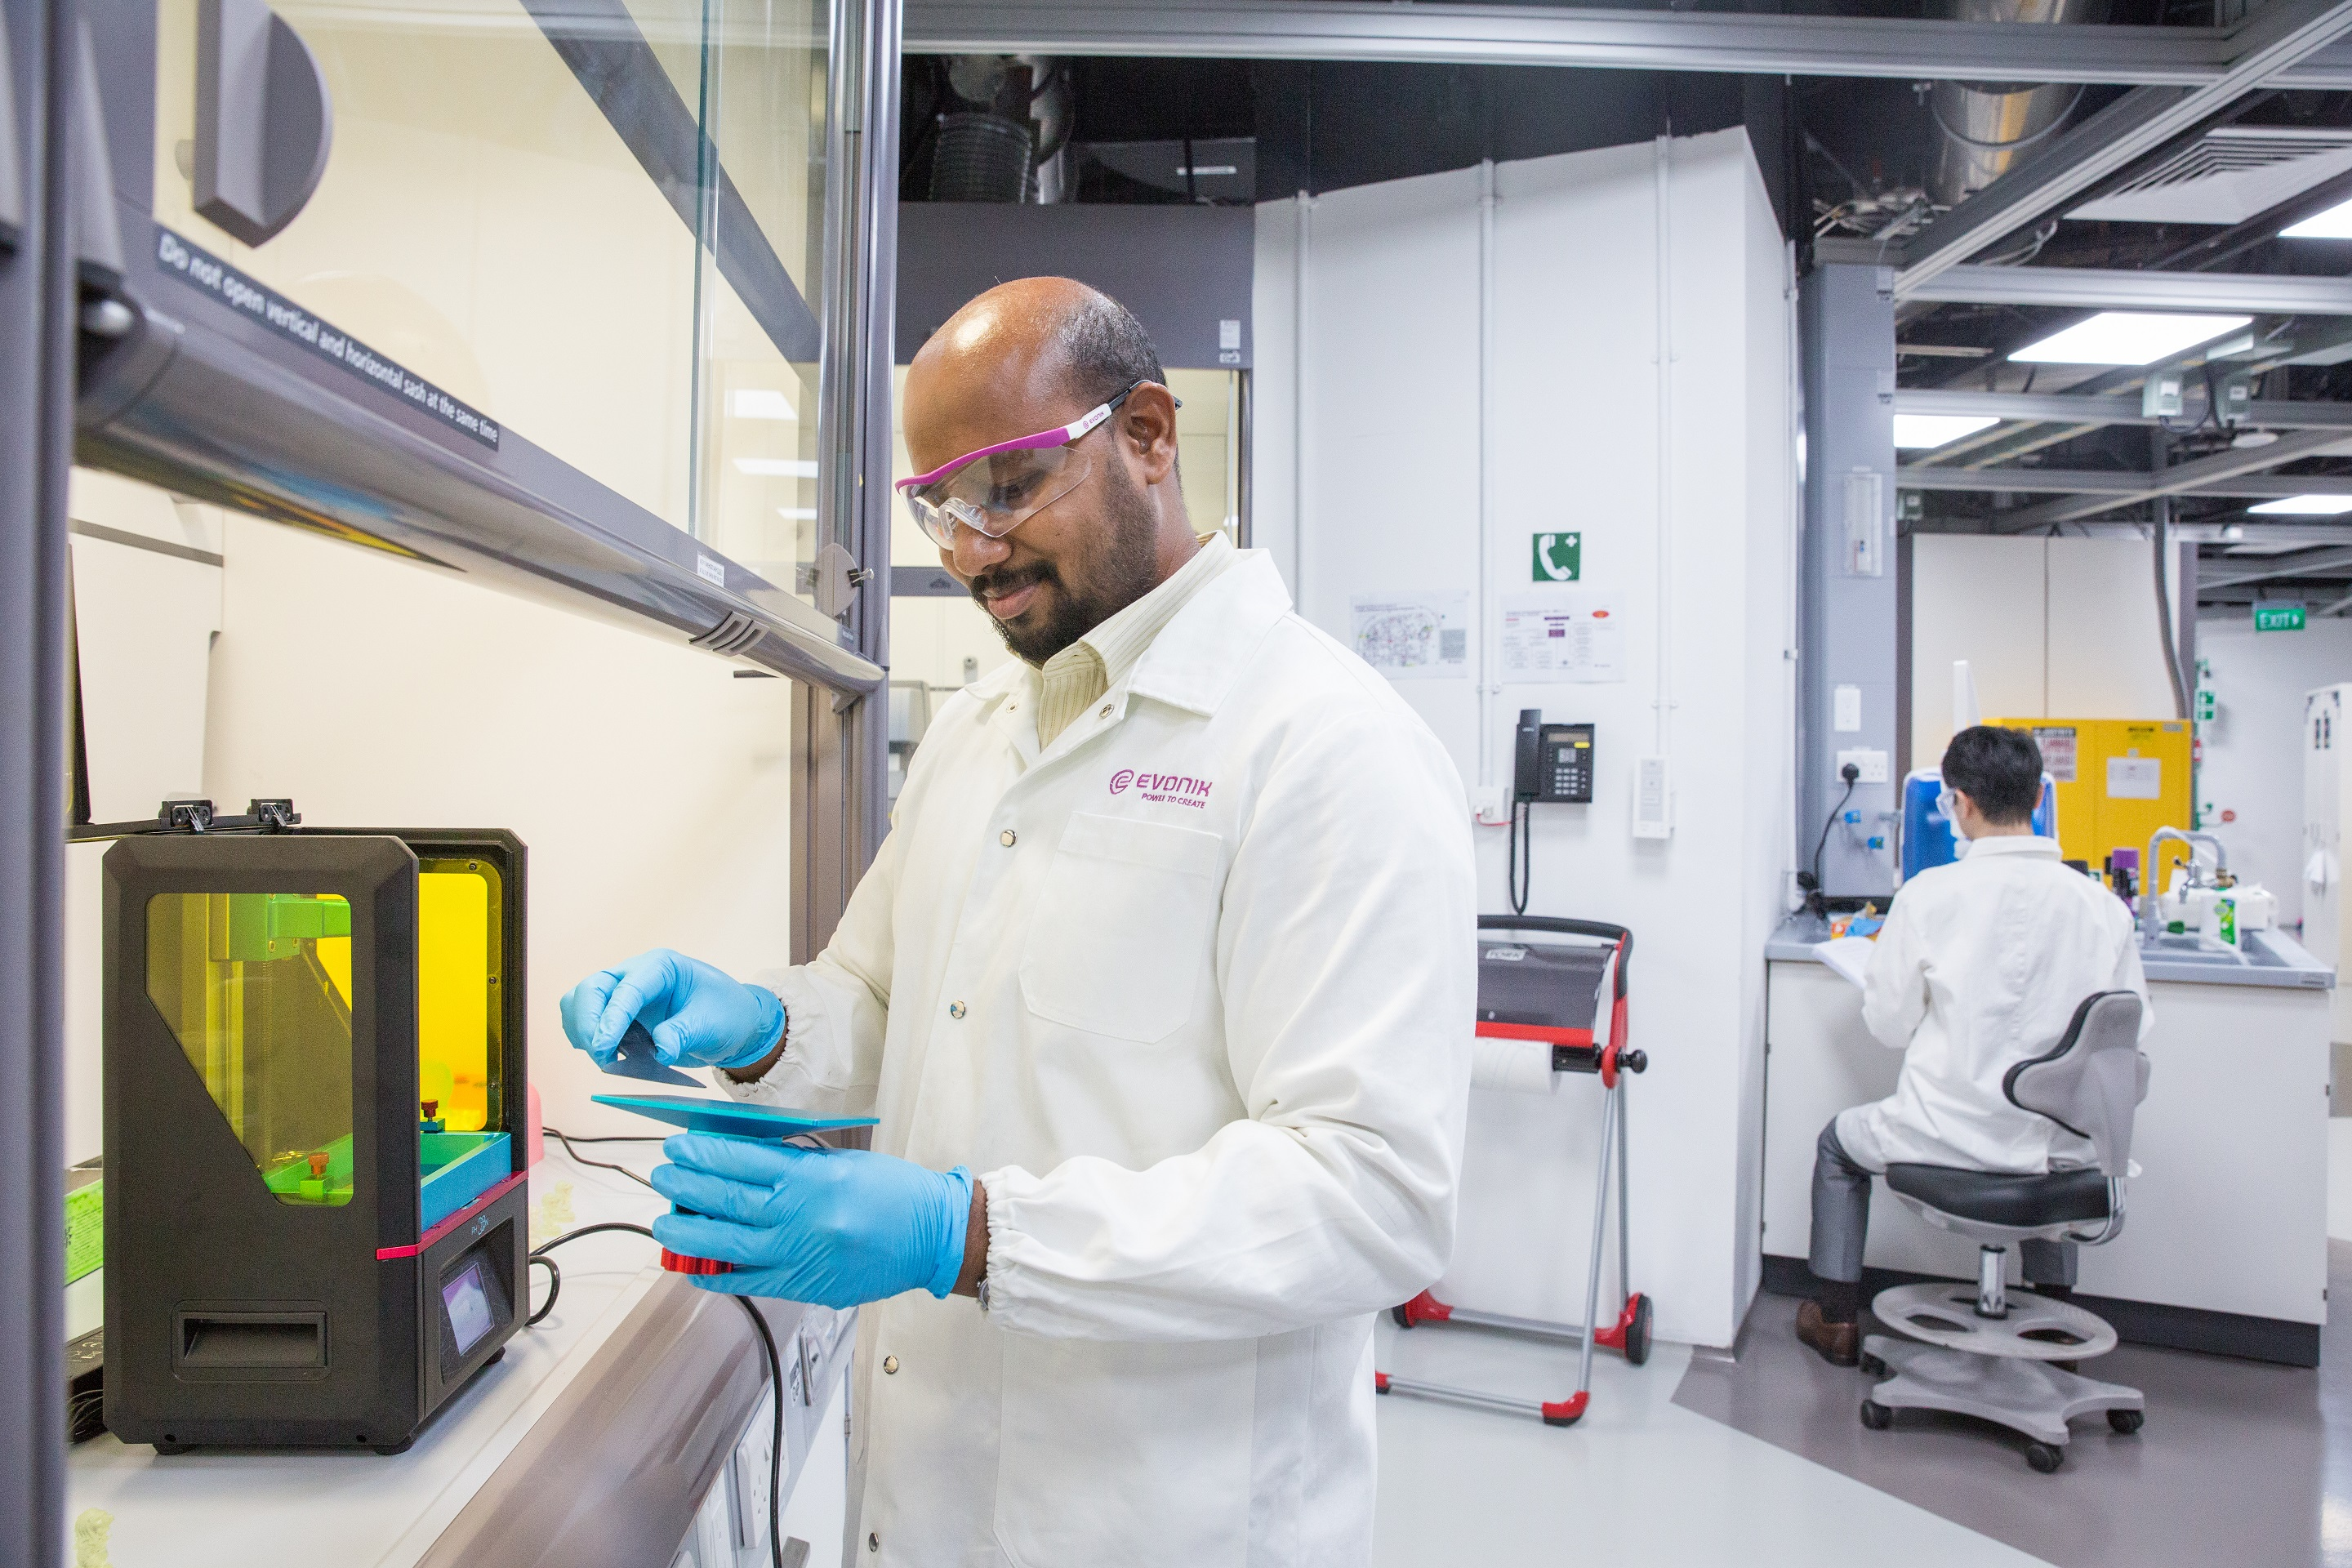 Evonik's new INFANIM range will include all of its 3D printing materials except for its medically-certified biomaterials. Photo via Evonik.